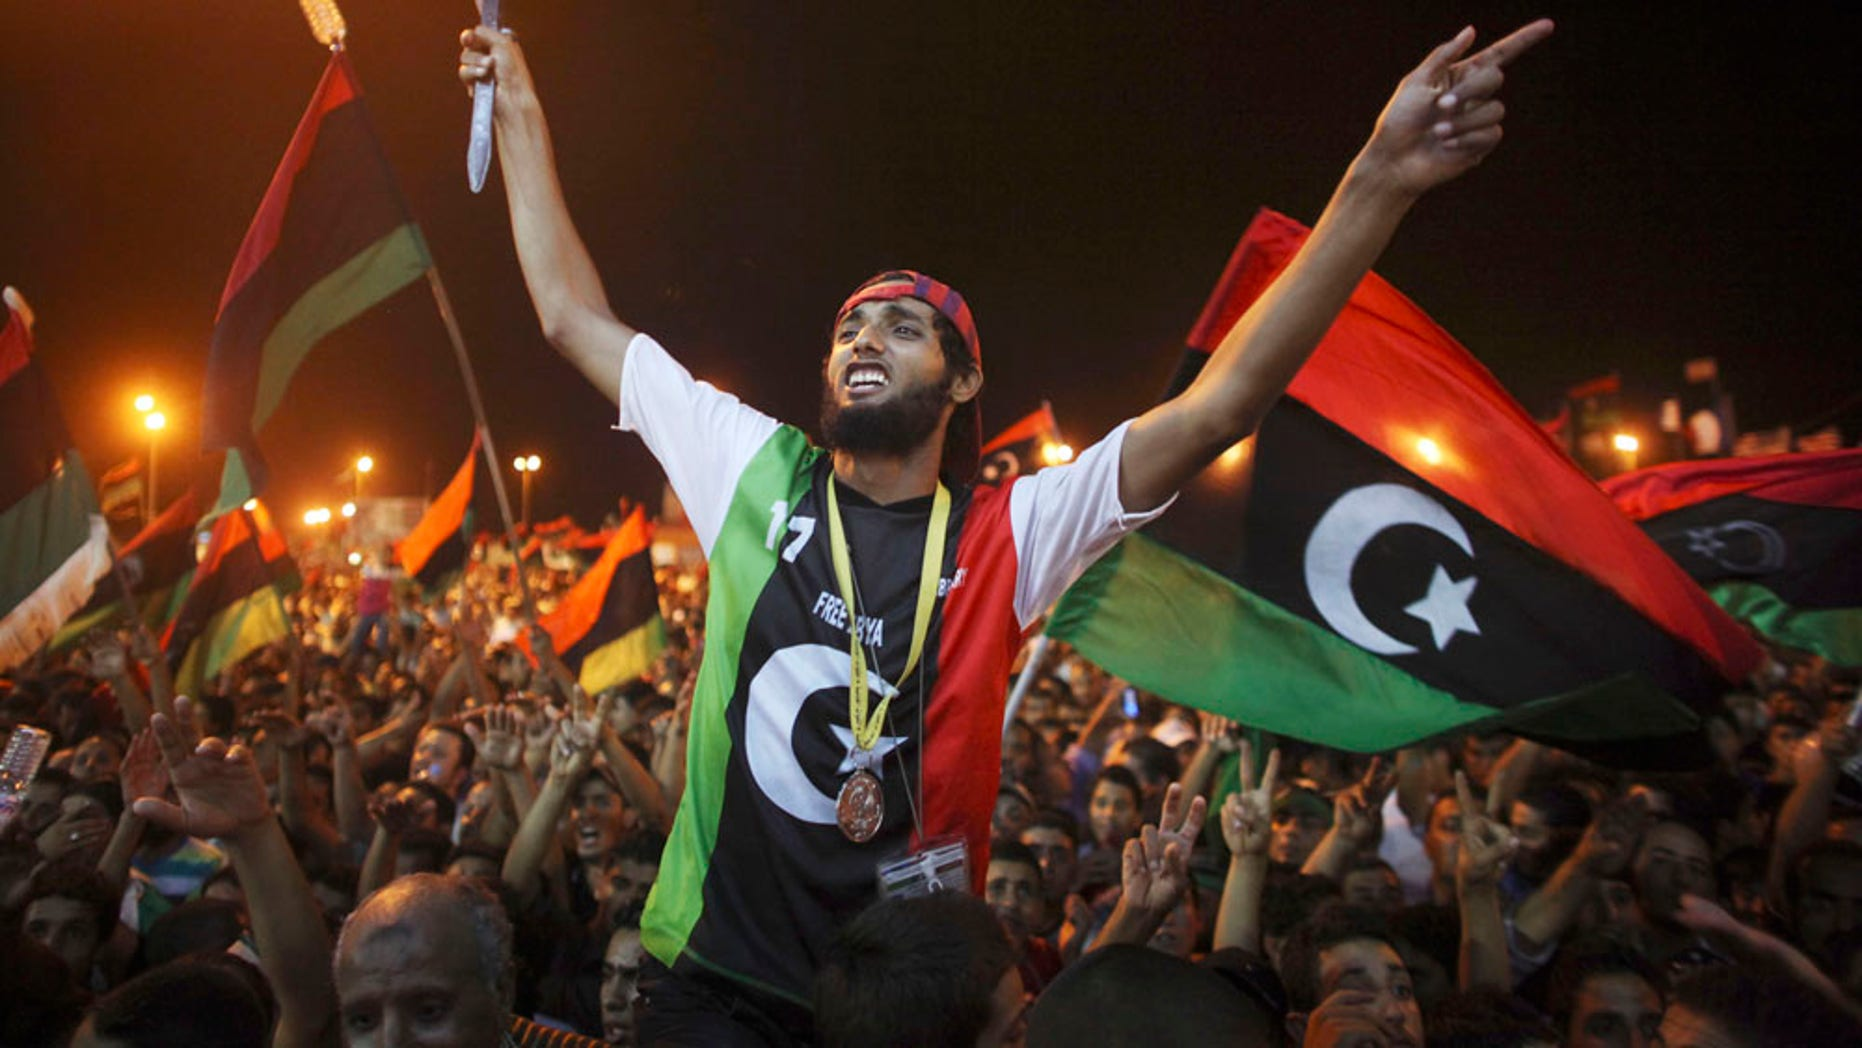 Aug. 22: People celebrate the capture in Tripoli of Qaddafi''s son and one-time heir apparent, Seif al-Islam, at the rebel-held town of Benghazi, Libya.